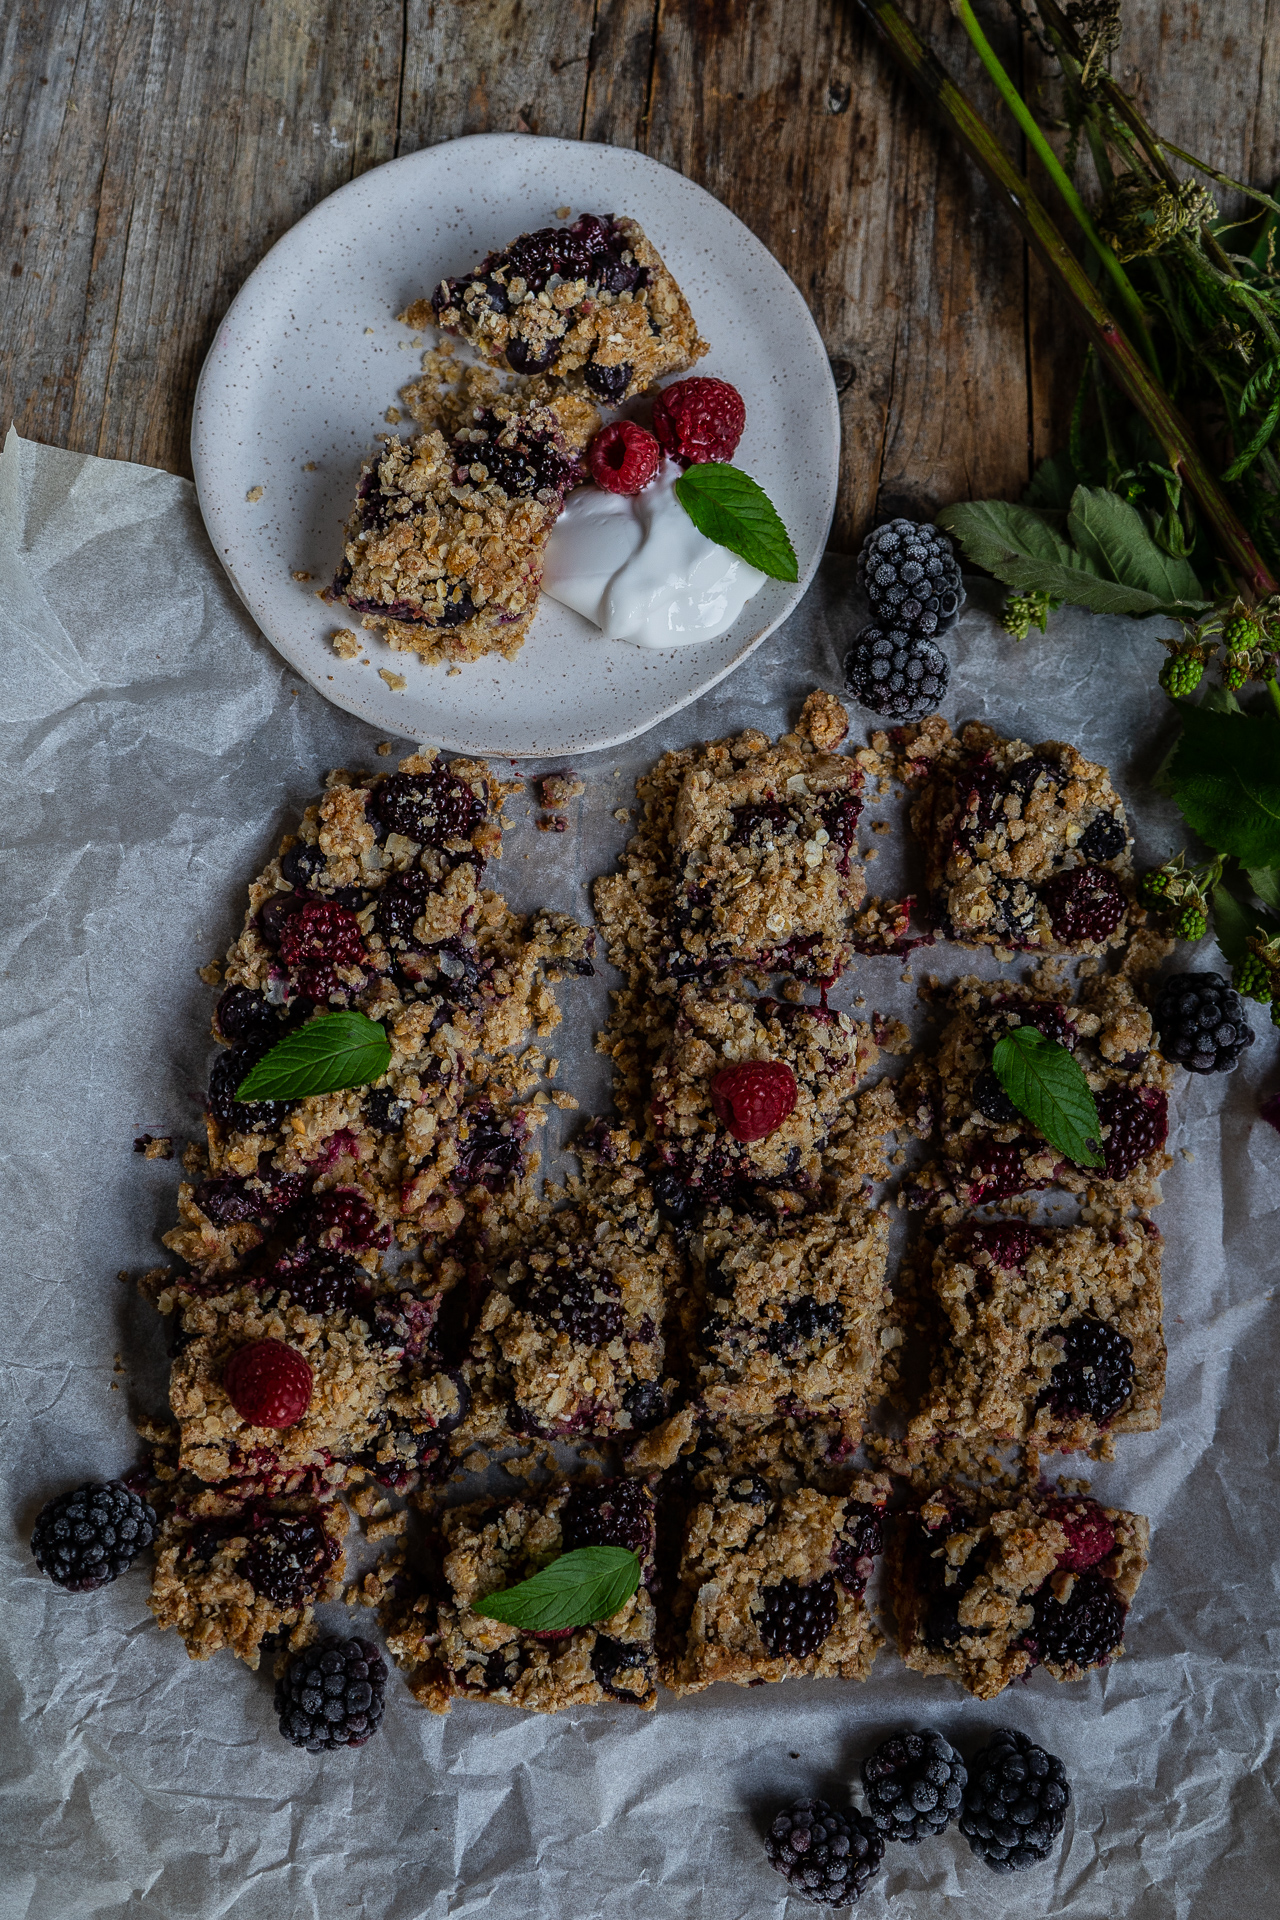 Crumble Cake mit Beeren vegan backen Mrs Flury